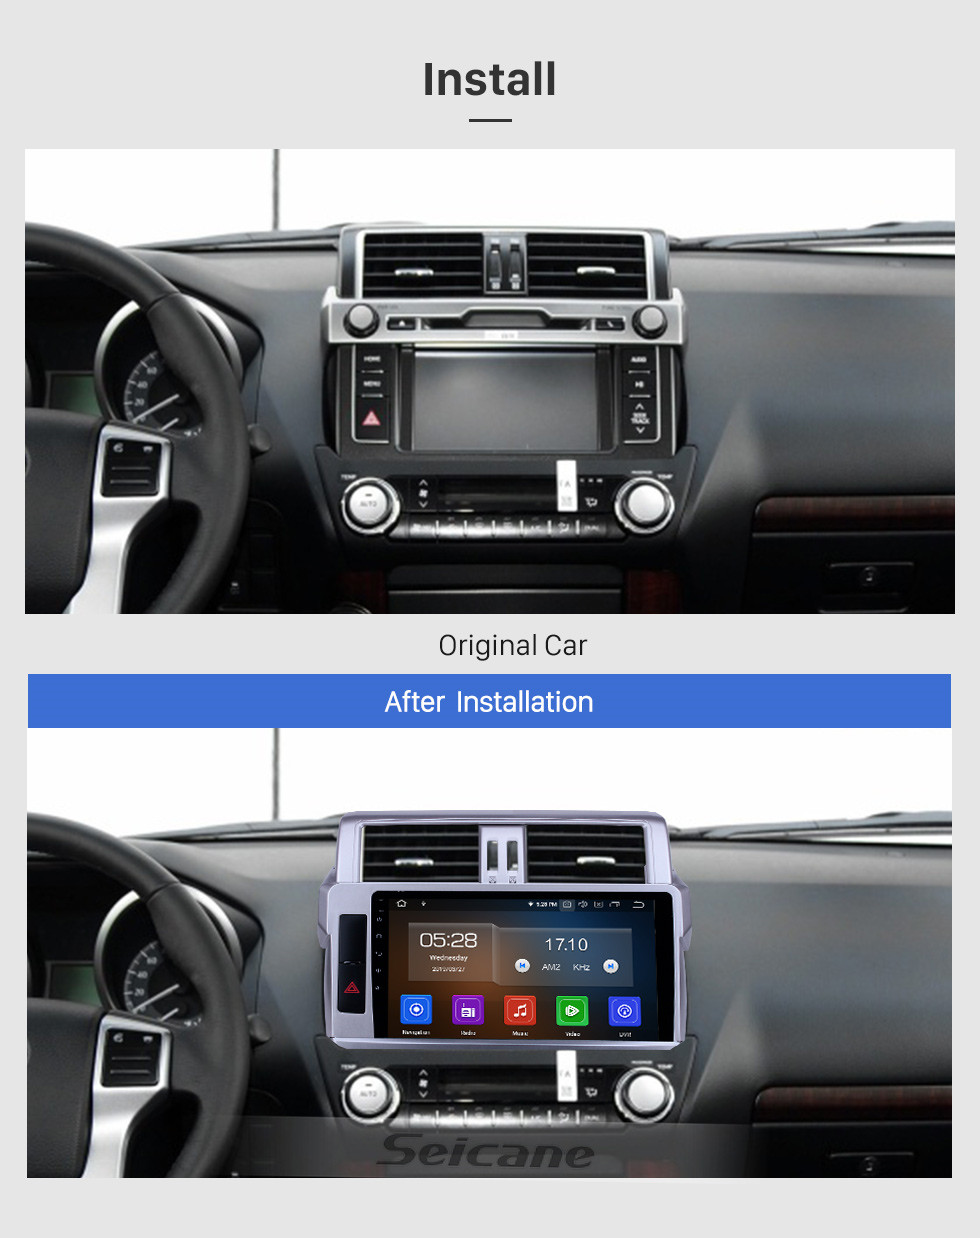 Seicane 2014 Toyota Prado 10.1 inch Android 10.0 HD Touchscreen Bluetooth Radio with GPS Navigation Carplay support Steering Wheel Control